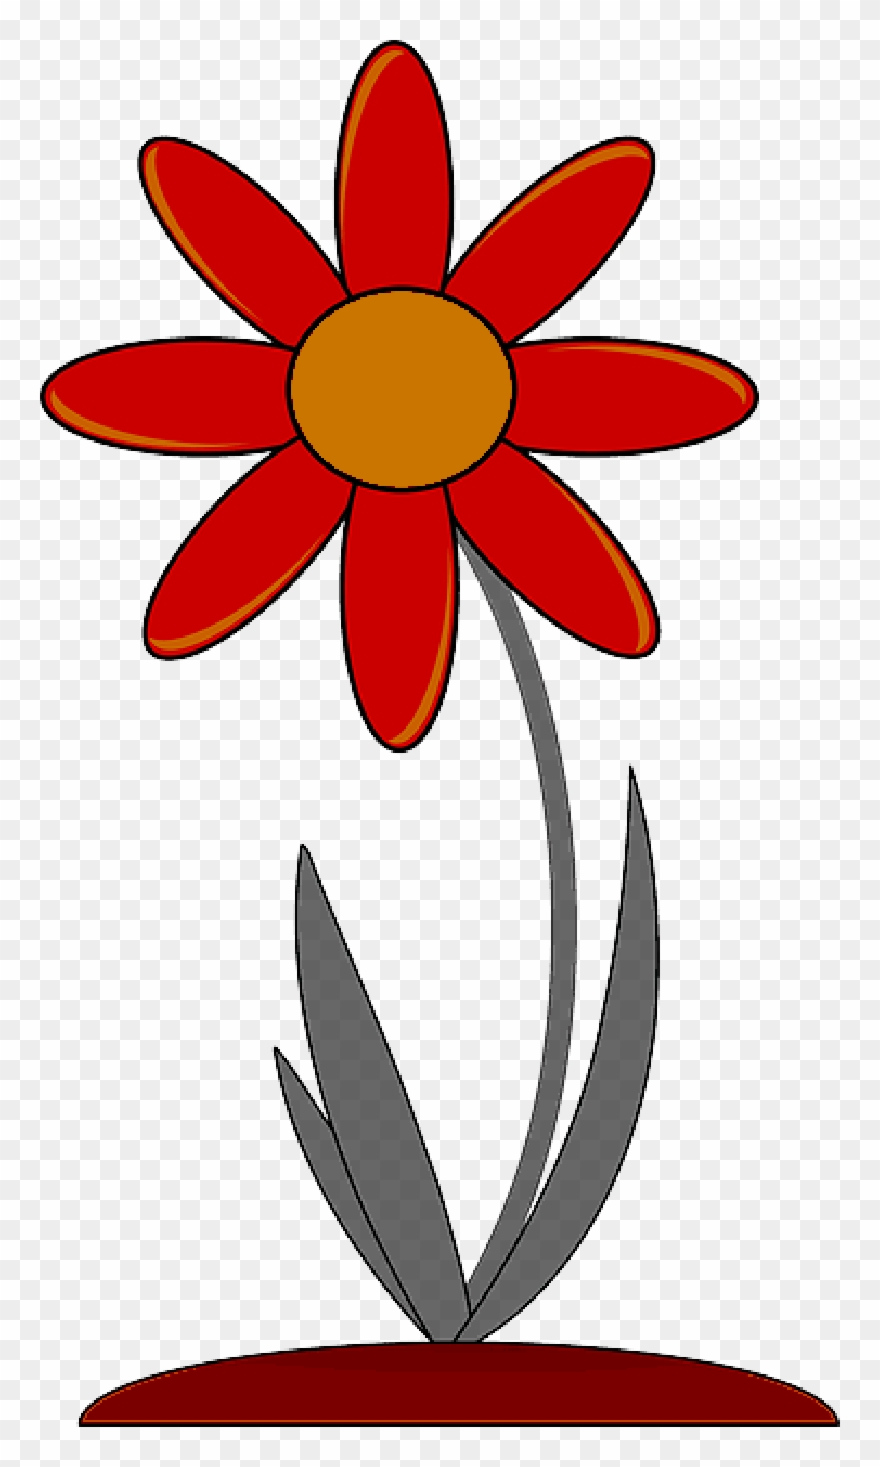 Plants flowers clipart jpg freeuse download Red, Outline, Drawing, Plants, Flower, Flowers, Cartoon ... jpg freeuse download